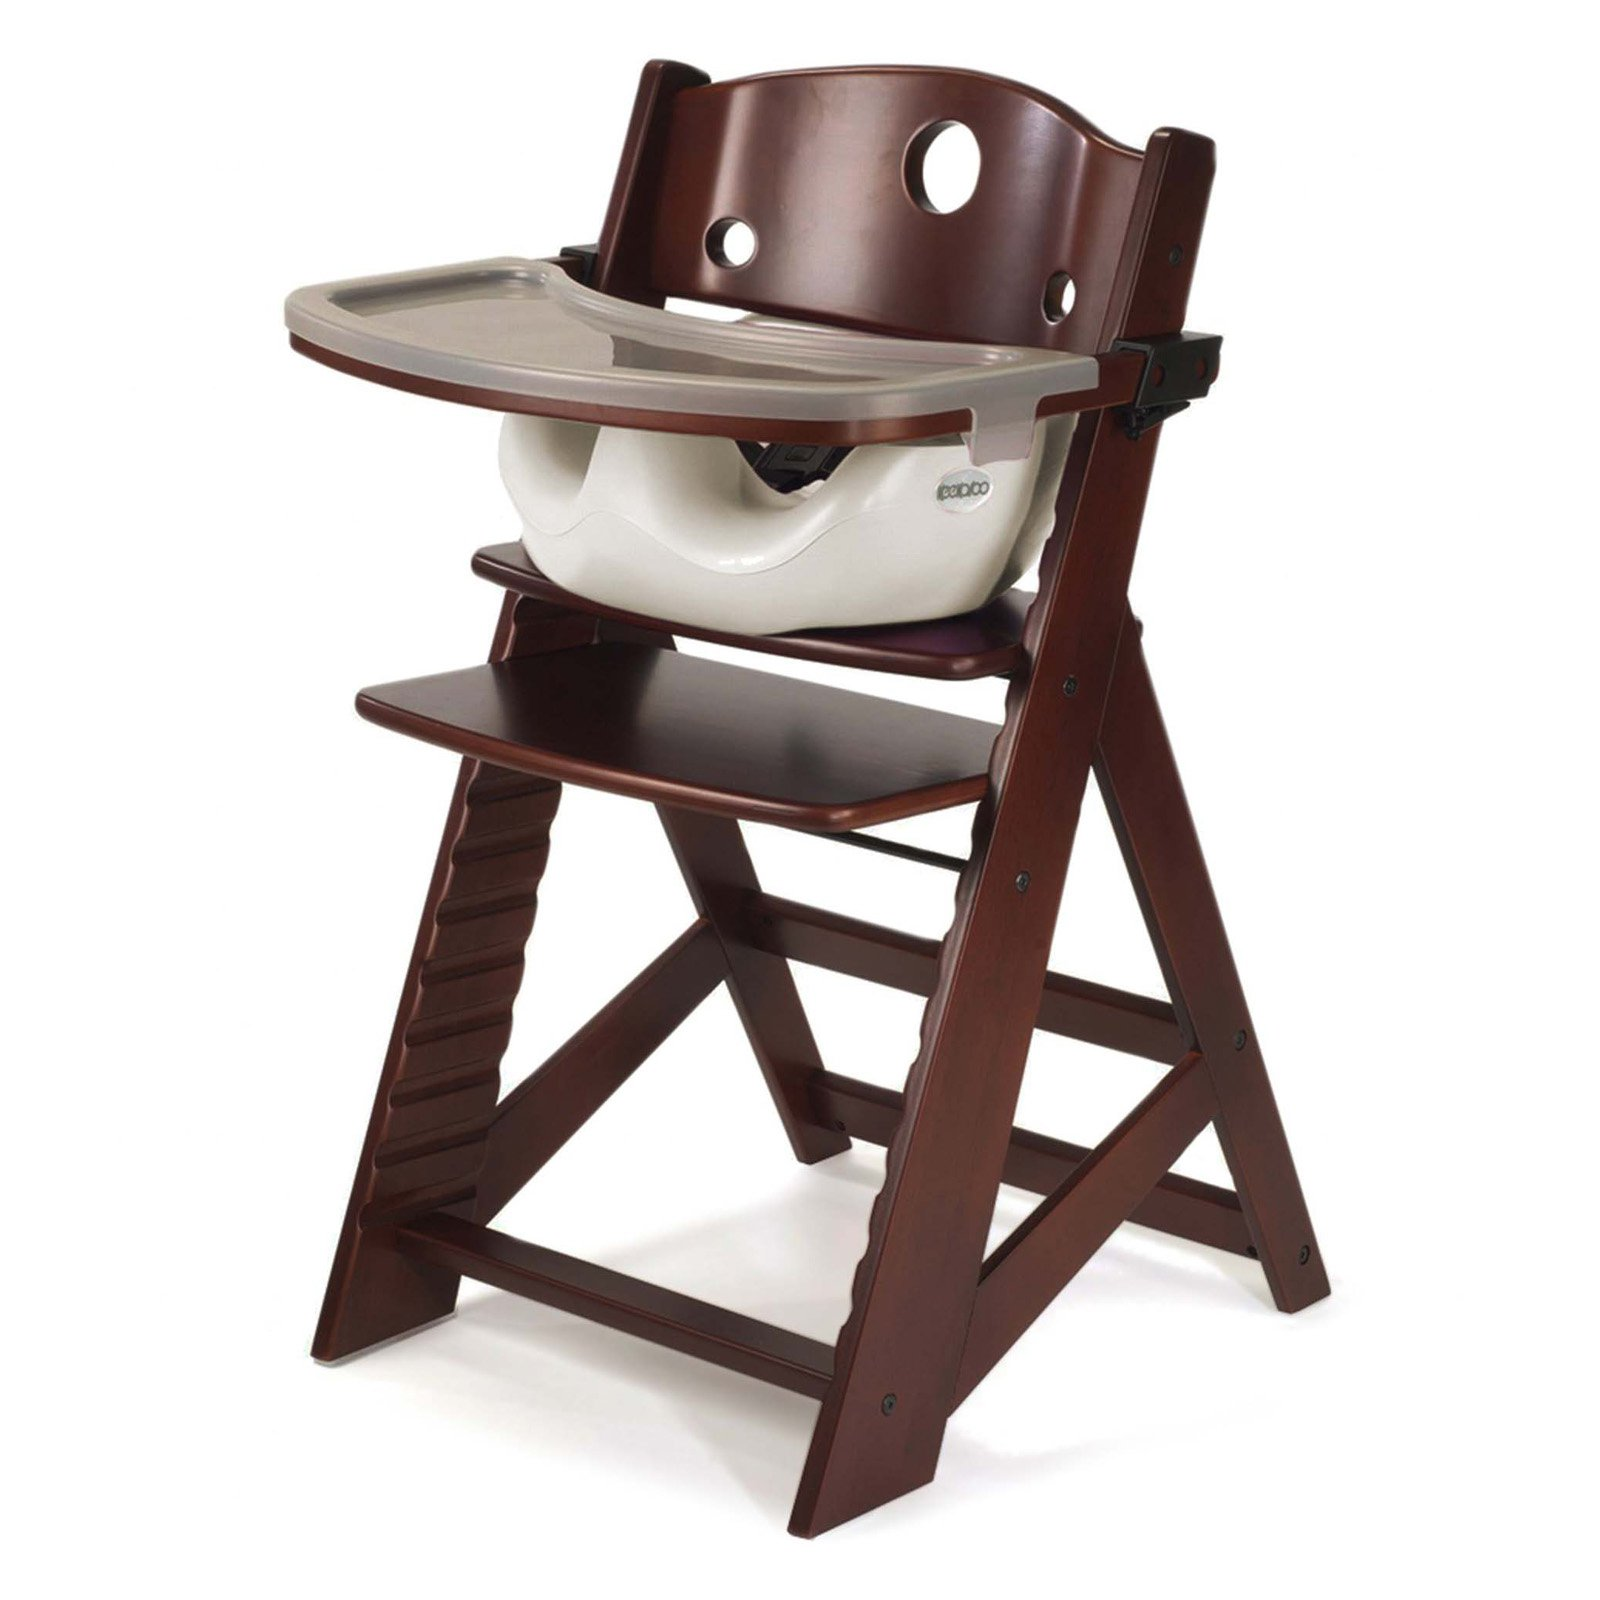 Keekaroo Height Right High Chair Mahogany with Black Infant Insert and Tray